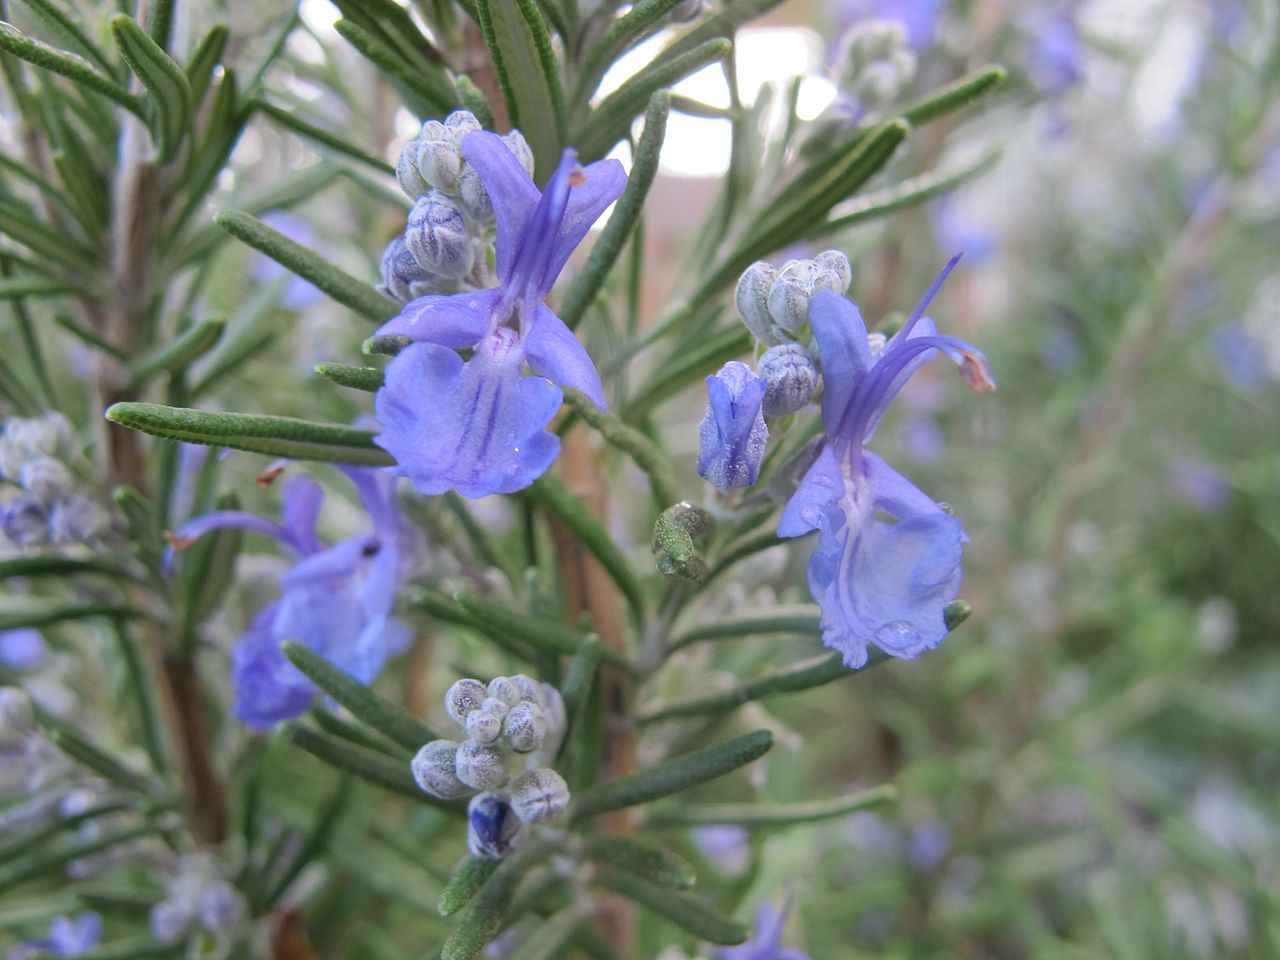 Rosemary_in_bloom.JPG